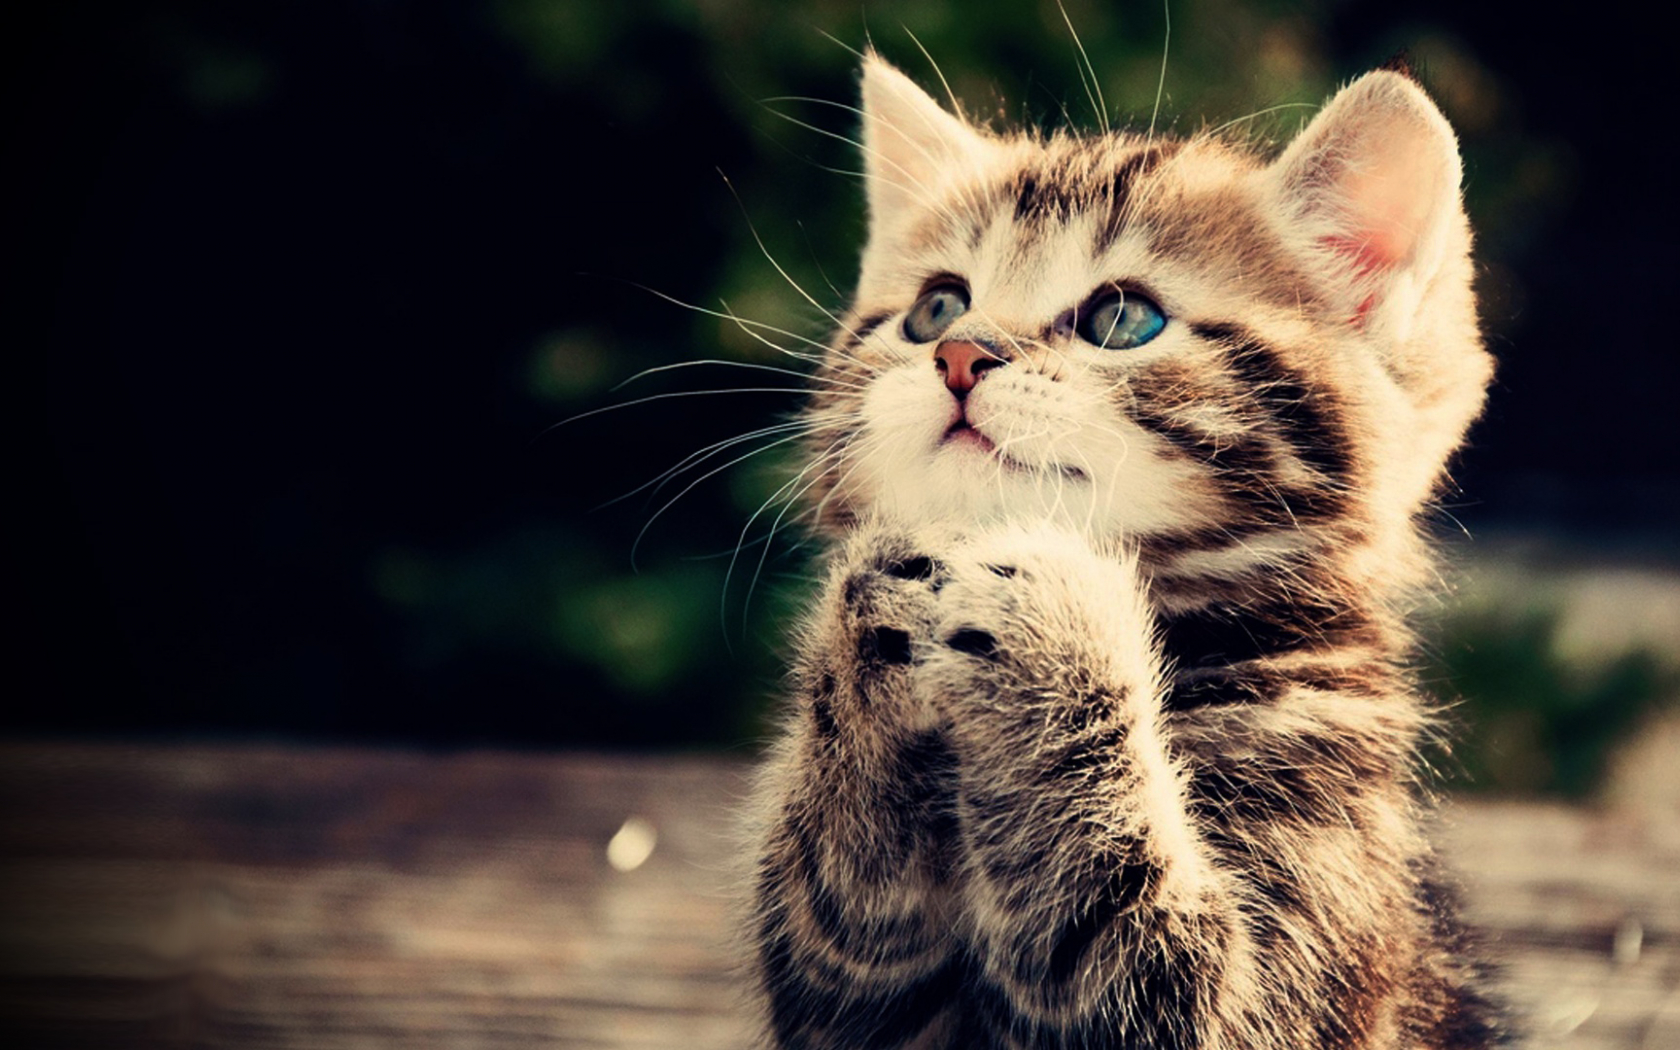 Free Download Praying Kitten Full Hd Wallpaper Cute Animal Picture 1080p Download 1920x1080 For Your Desktop Mobile Tablet Explore 48 Hd Cat Wallpapers Full Hd Wallpapers 1920x1080 3d Hd